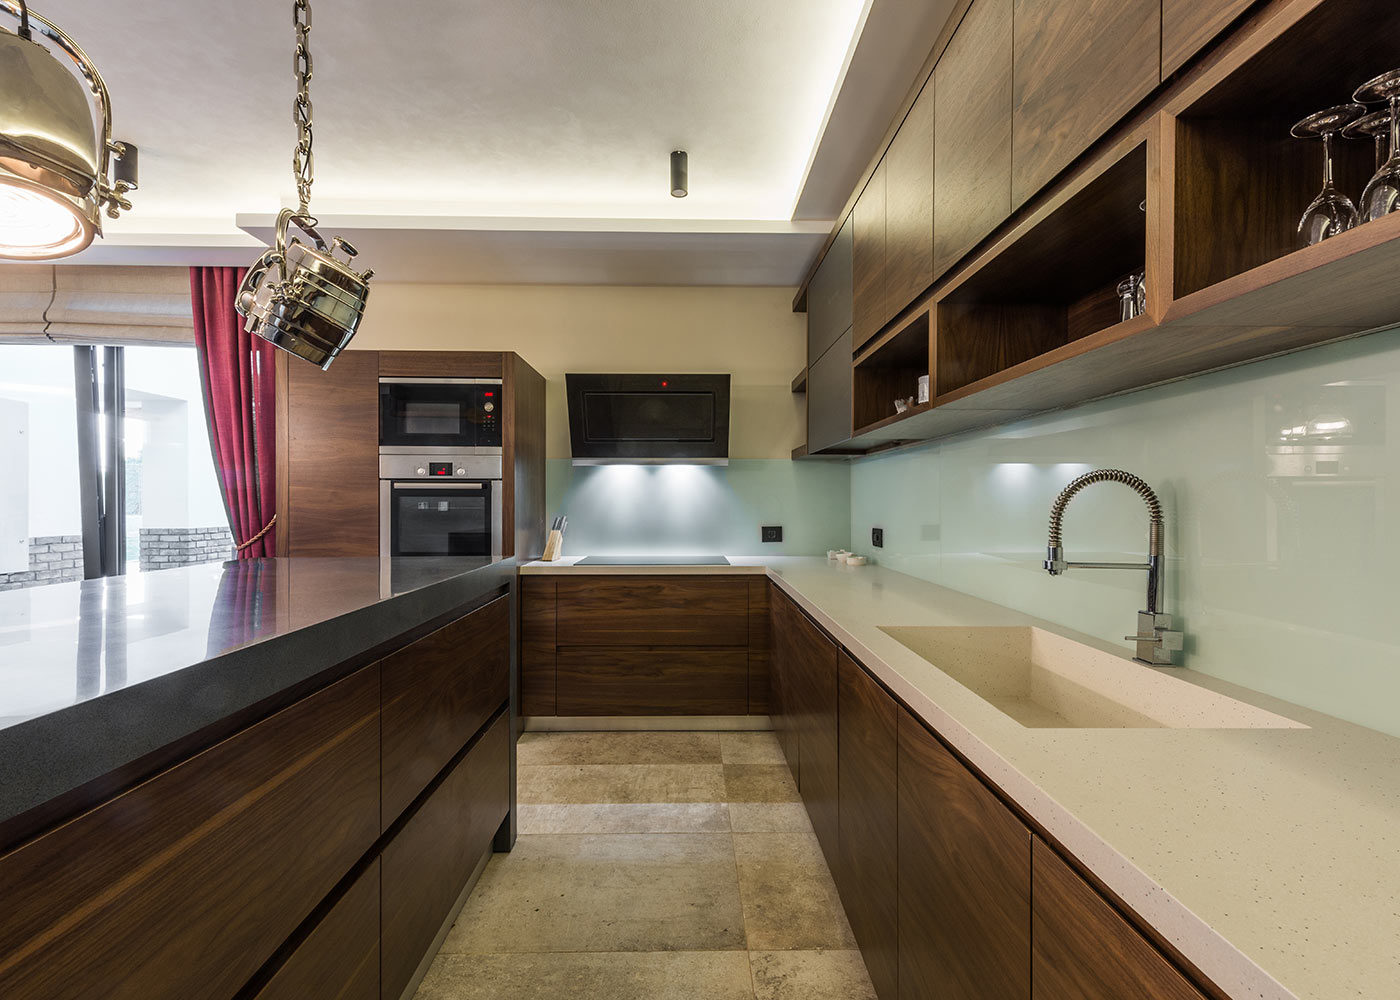 Contemporary kitchen backsplash